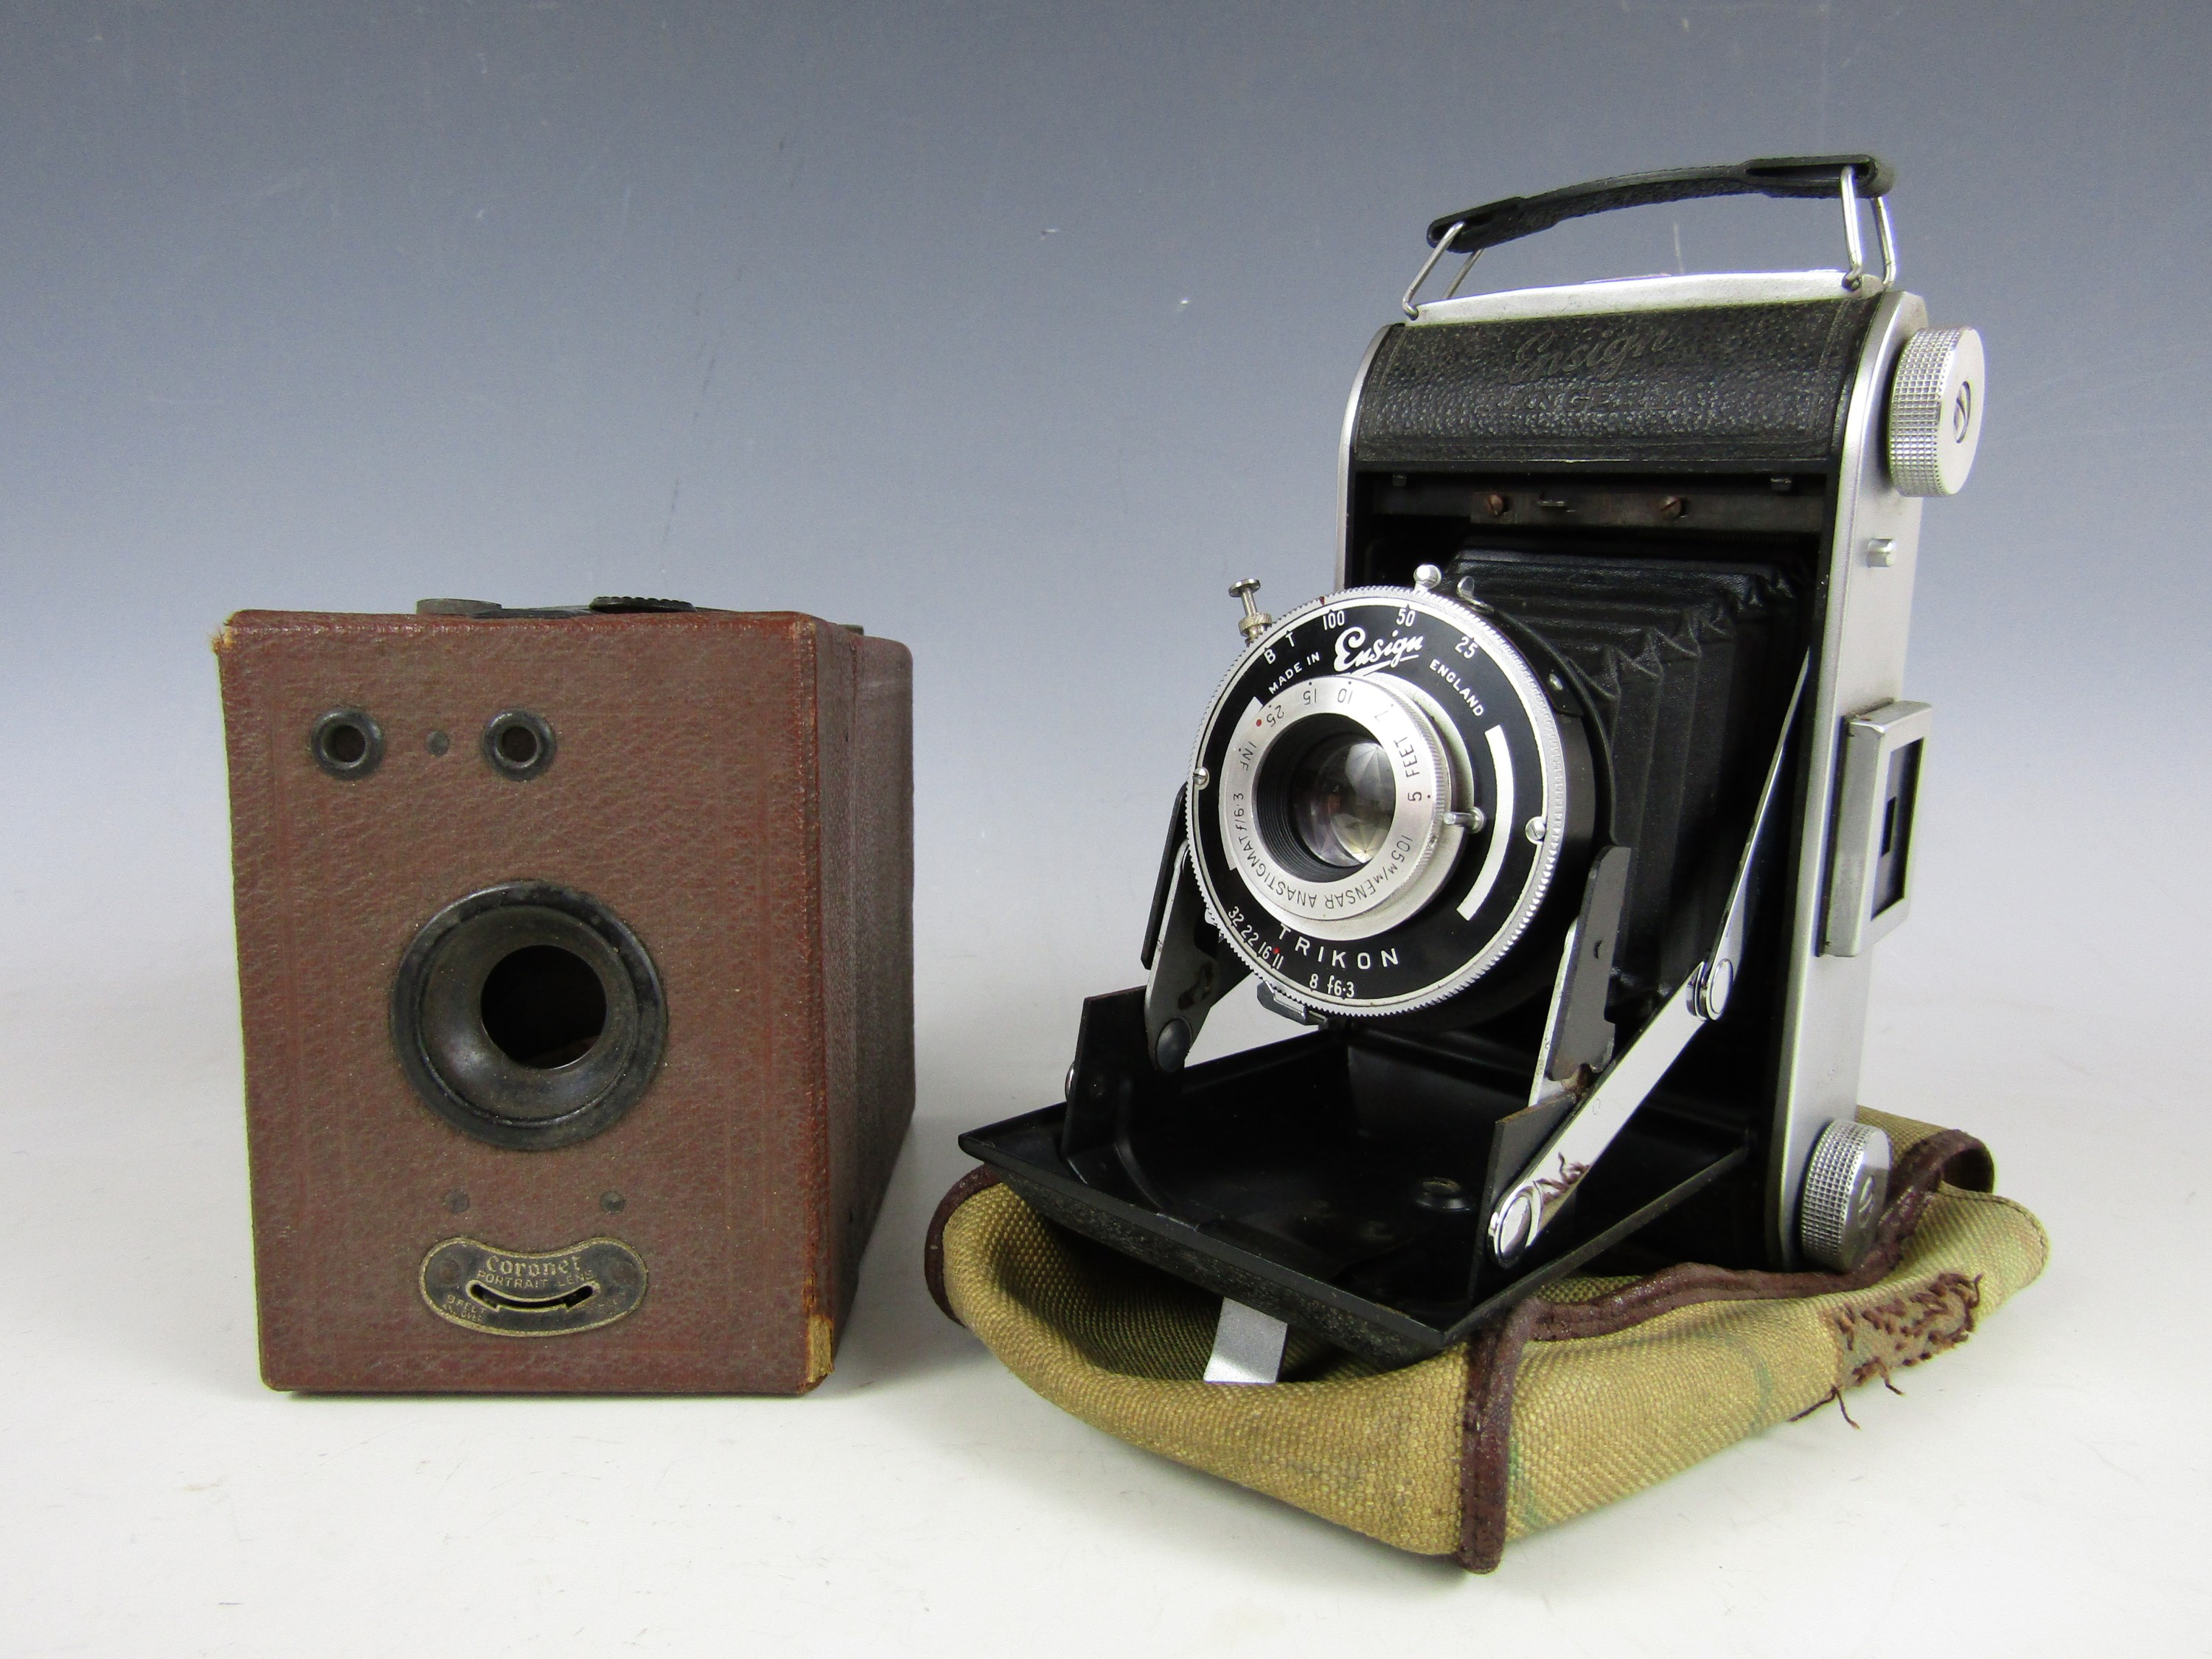 Lot 55 - A vintage Coronet box camera and an Ensign Ranger 2 folding rollfilm camera